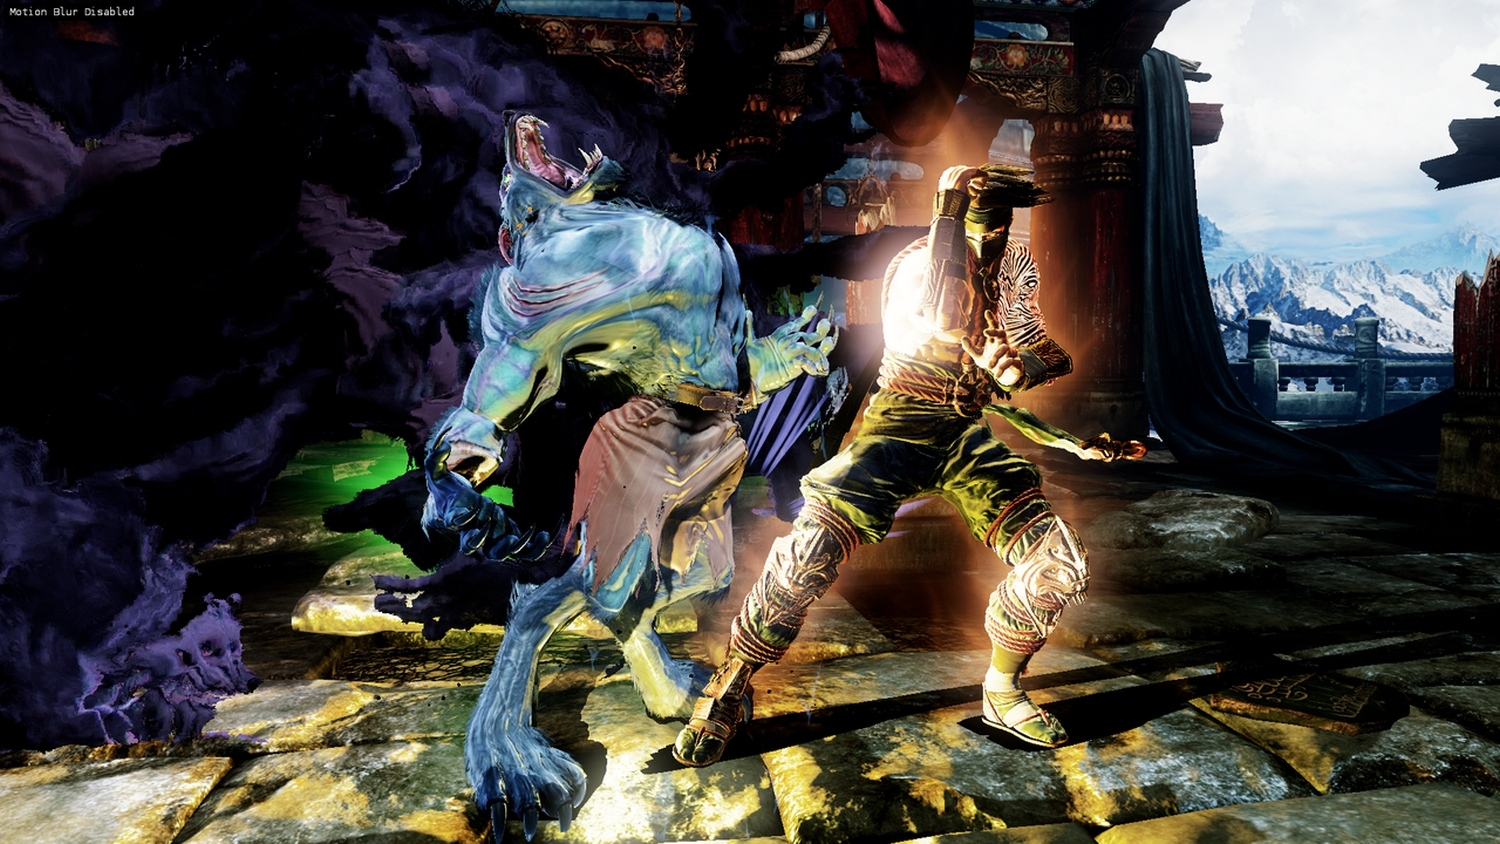 Killer Instinct - The Mystery Game on the SGC unveiled